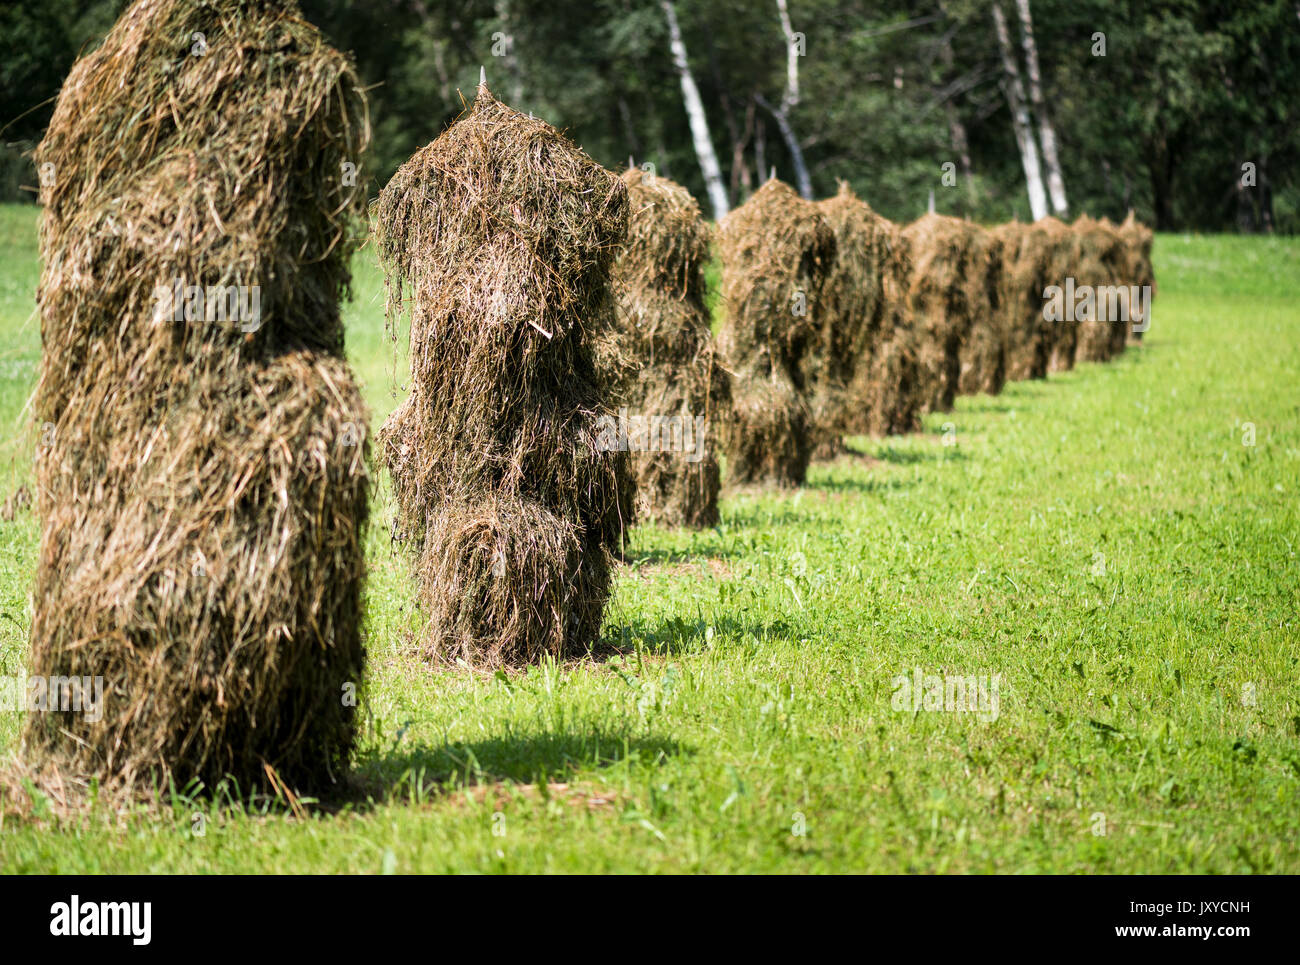 An ancient way to dry grass - Stock Image